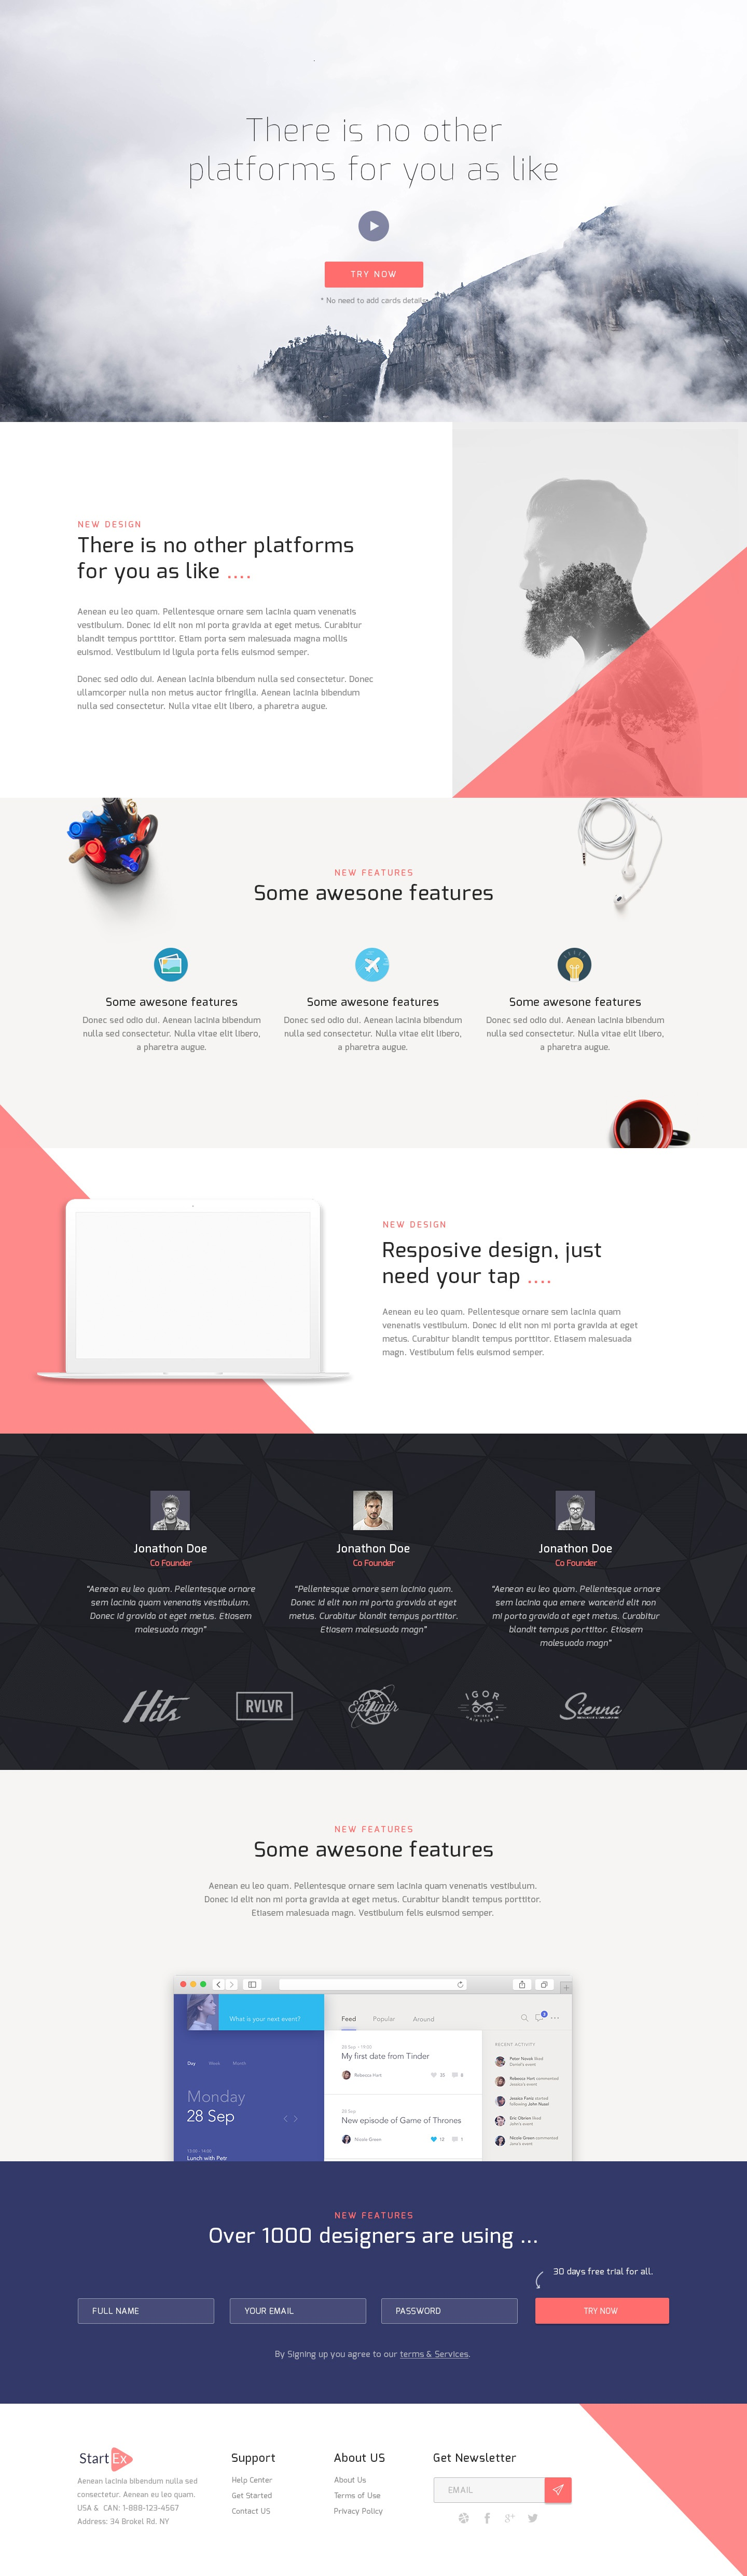 Dribbble Free Psd Corporate Landing Page Template Jpg By